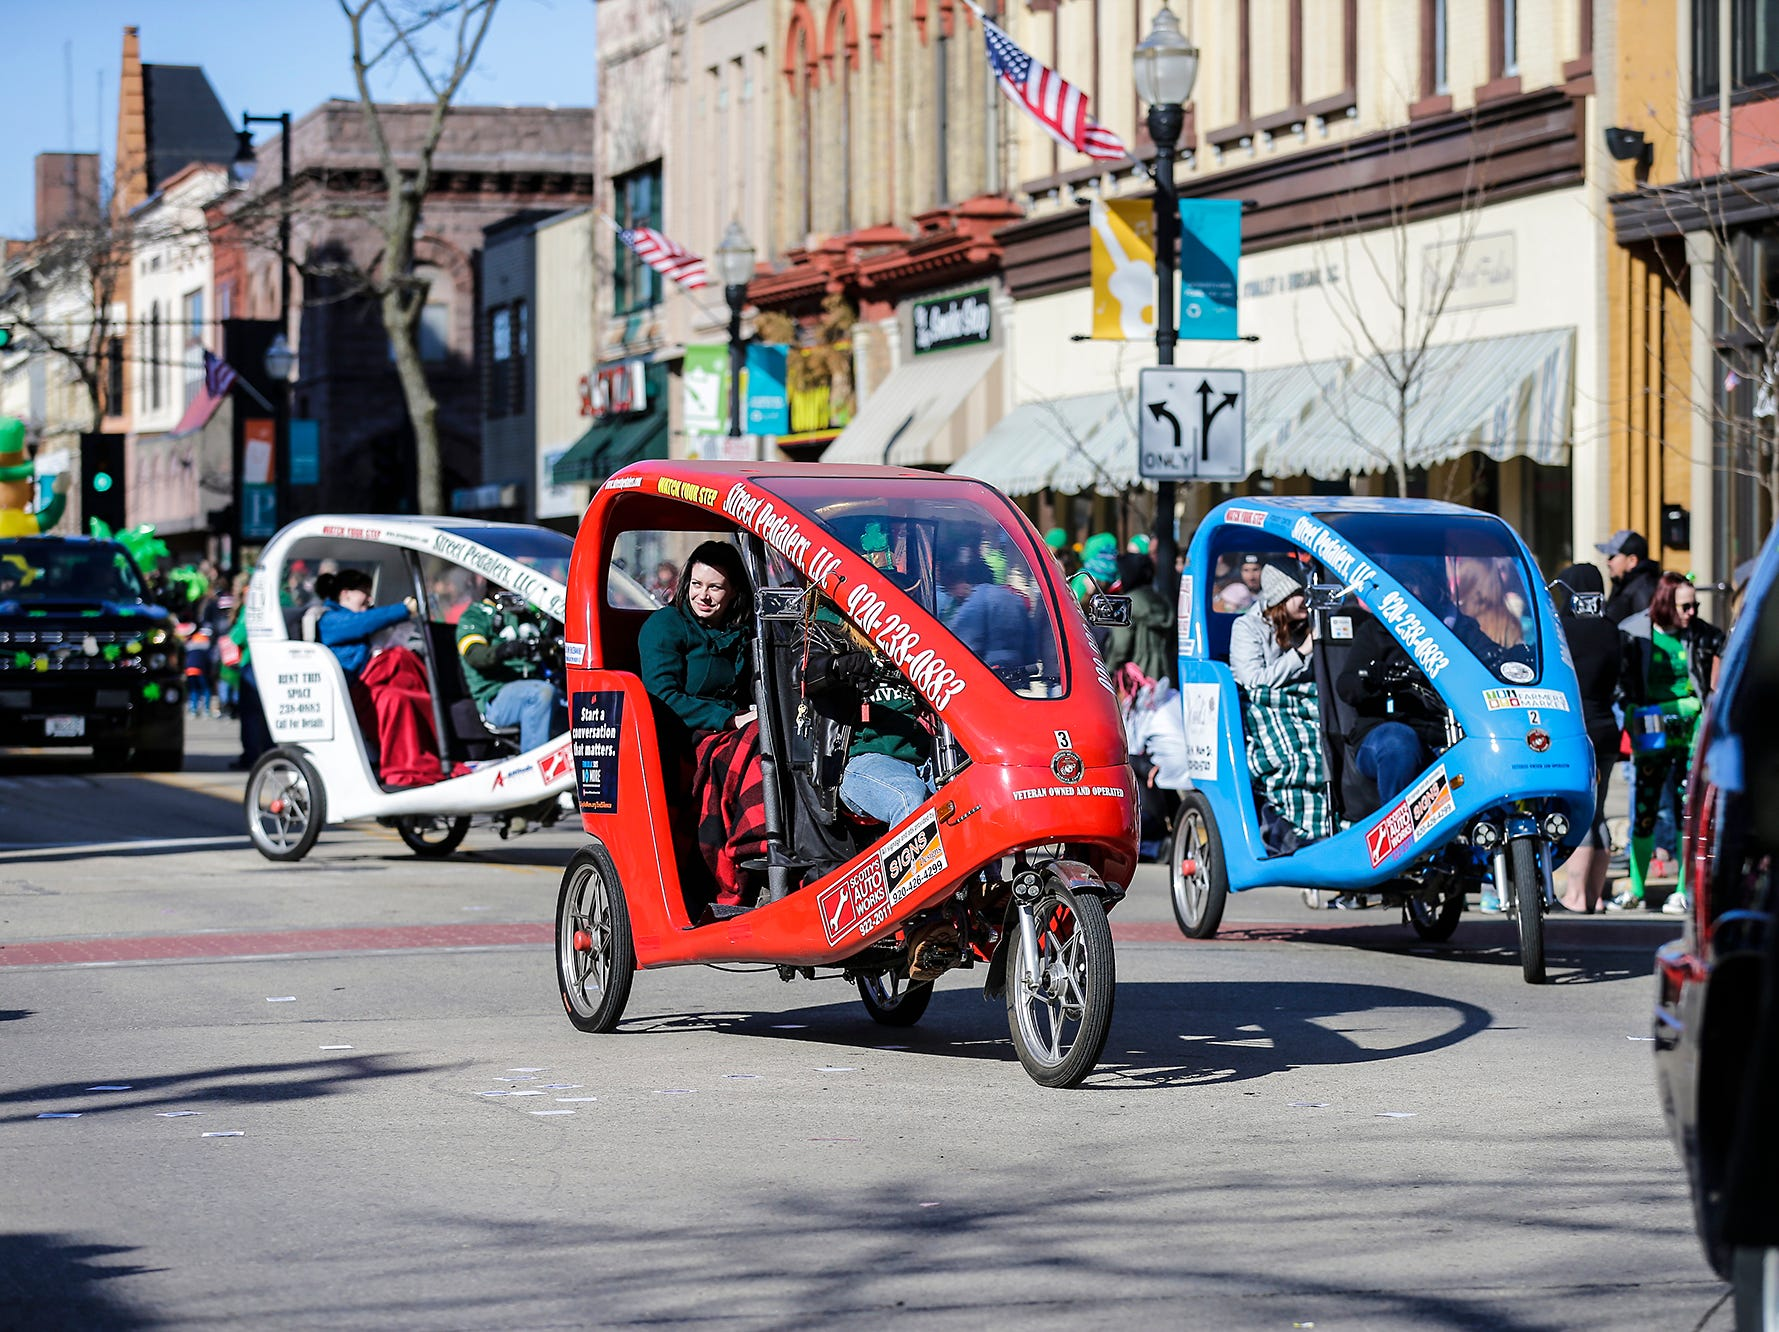 Street Pedalers LLC of Fond du Lac participated in the City of Fond du Lac St. Patrick's Day Parade Saturday, March 16, 2019 on Main Street in downtown Fond du Lac. Hundreds of people lined the street to watch over 50 parade participants. Doug Raflik/USA TODAY NETWORK-Wisconsin